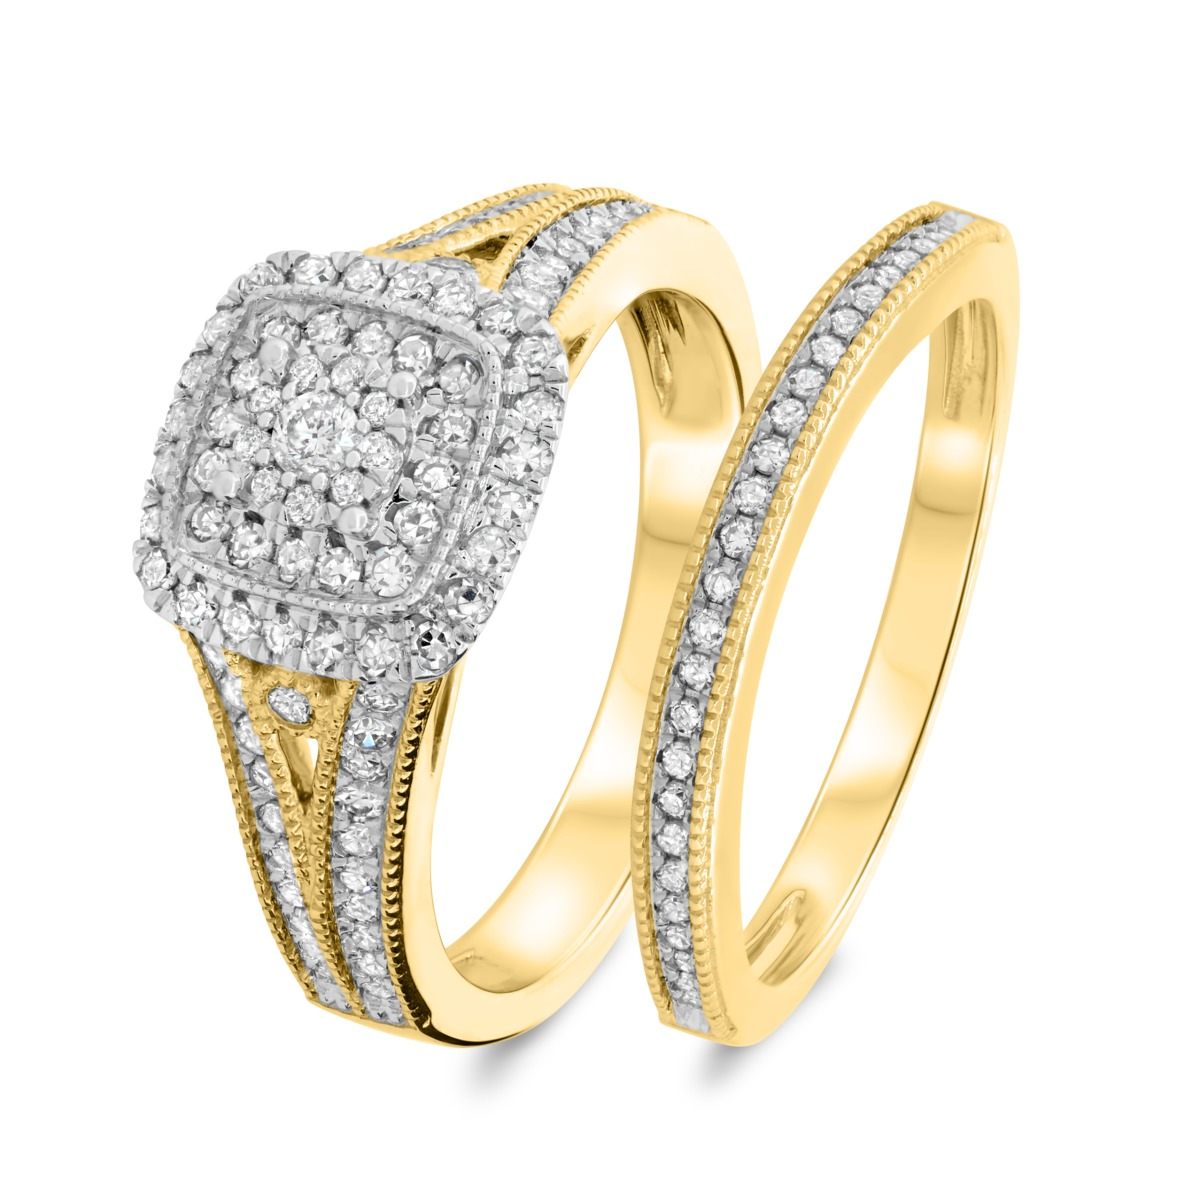 2/3 CT. T.W. Diamond Matching Bridal Ring Set 14K Yellow Gold